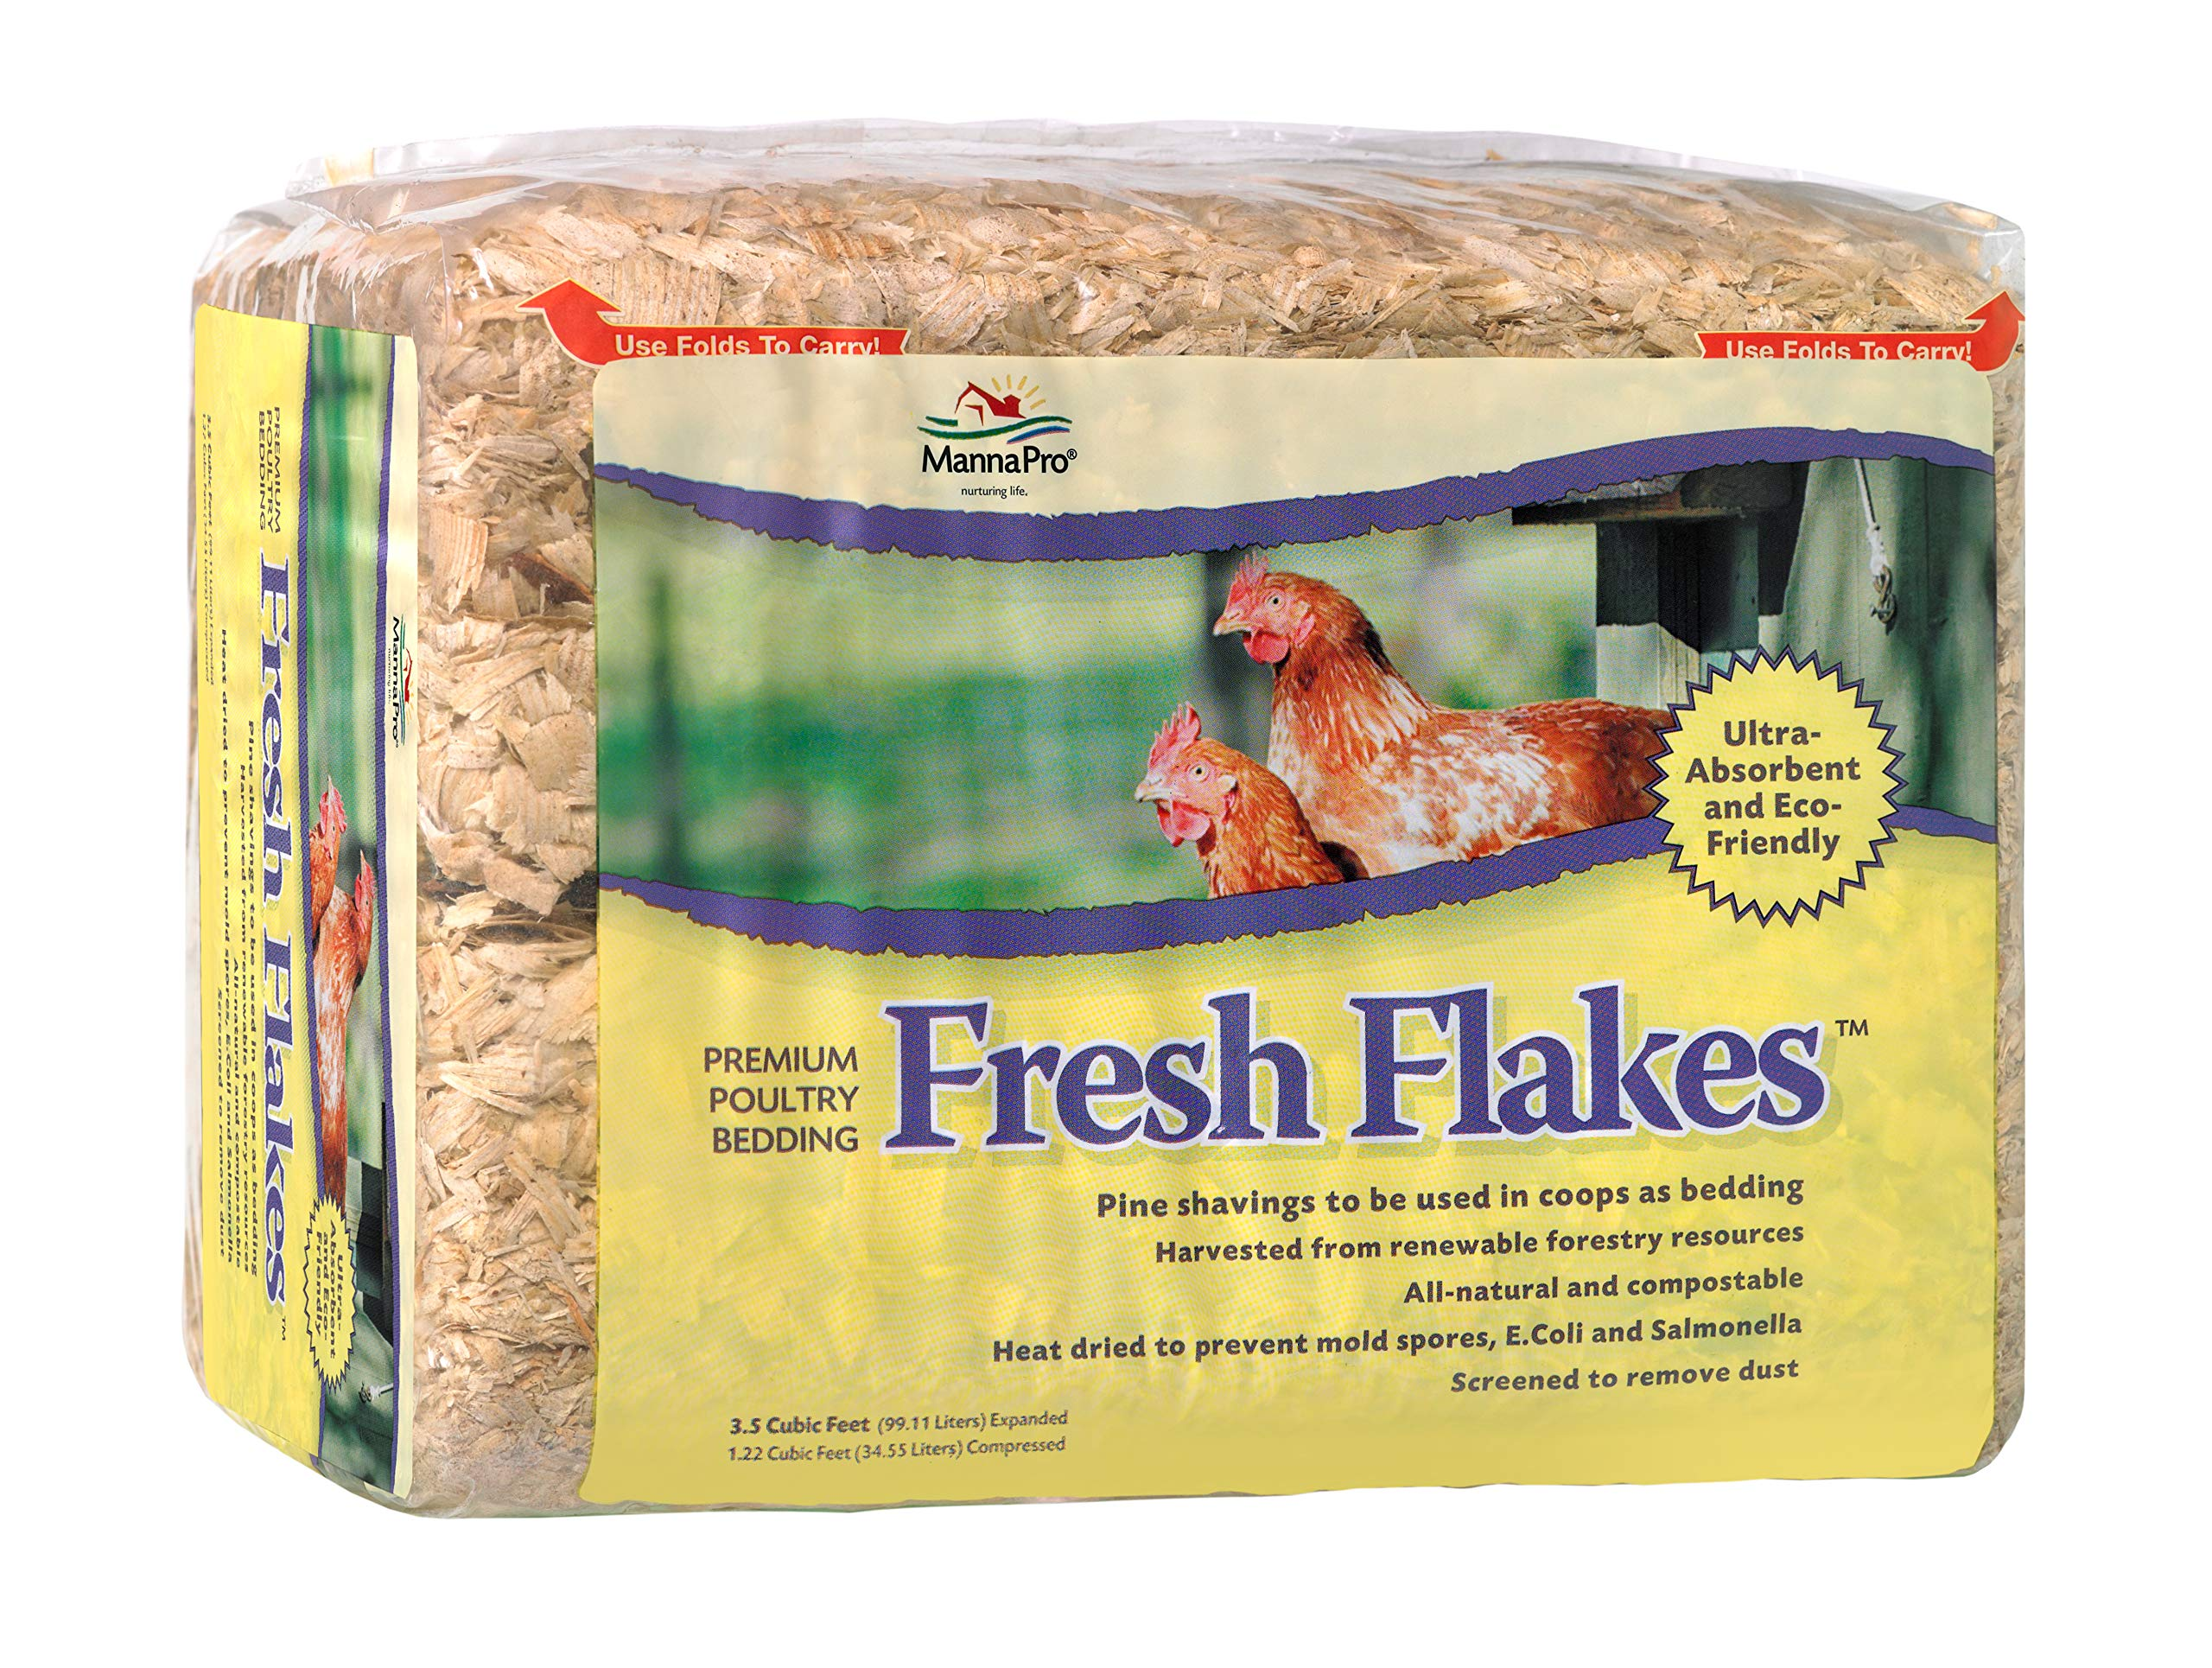 Manna Pro 1000316 Chickens Fresh Flakes Pine Shavings Bedding, 3.5 Cubic Feet by Manna Pro